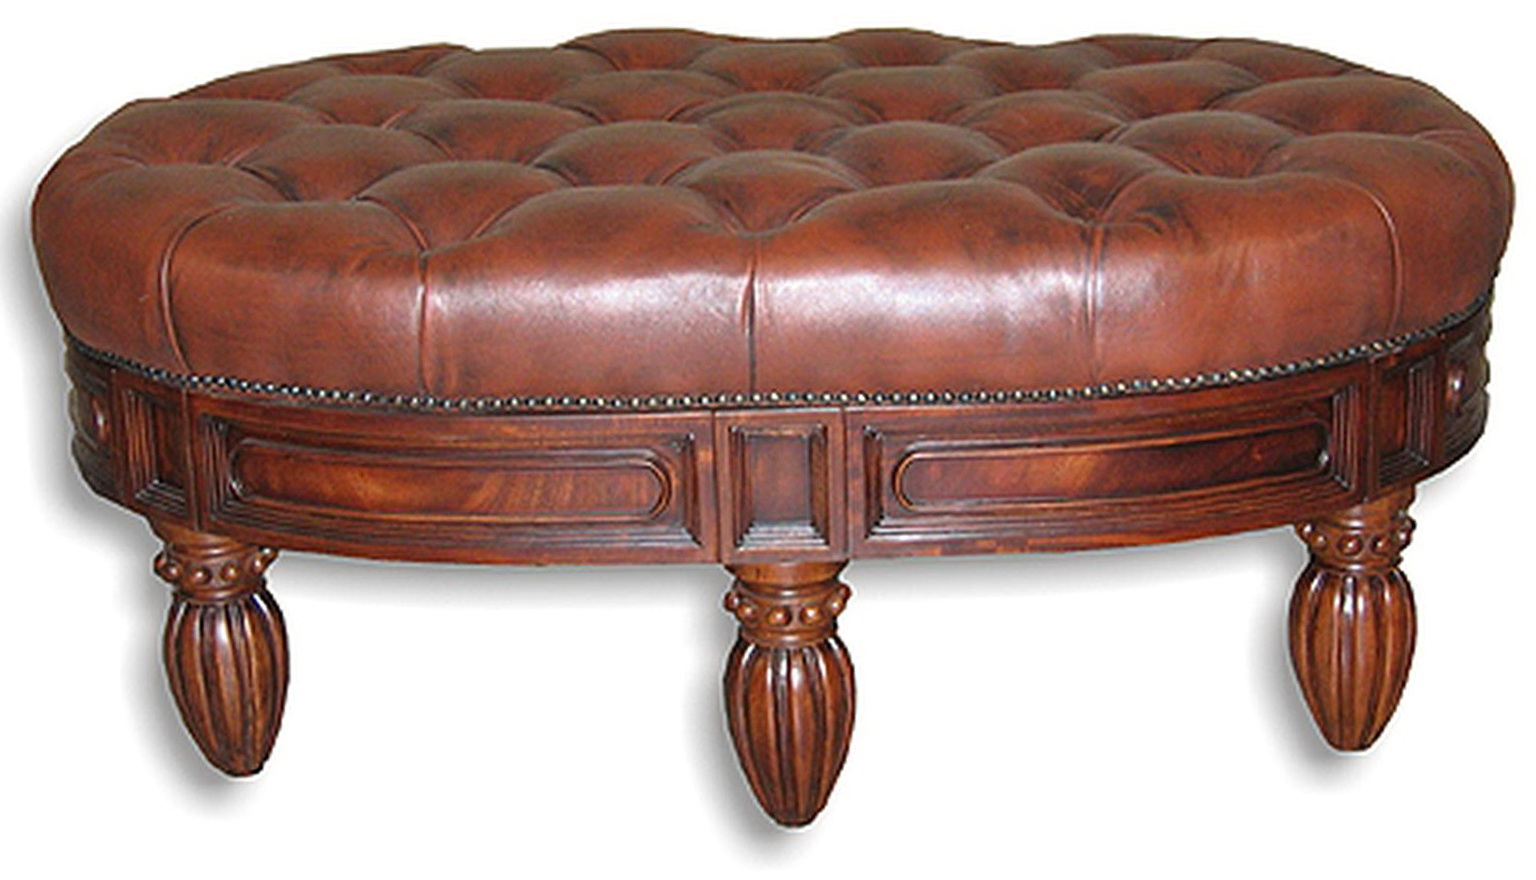 Tufted Leather Ottoman With Nailhead Trim